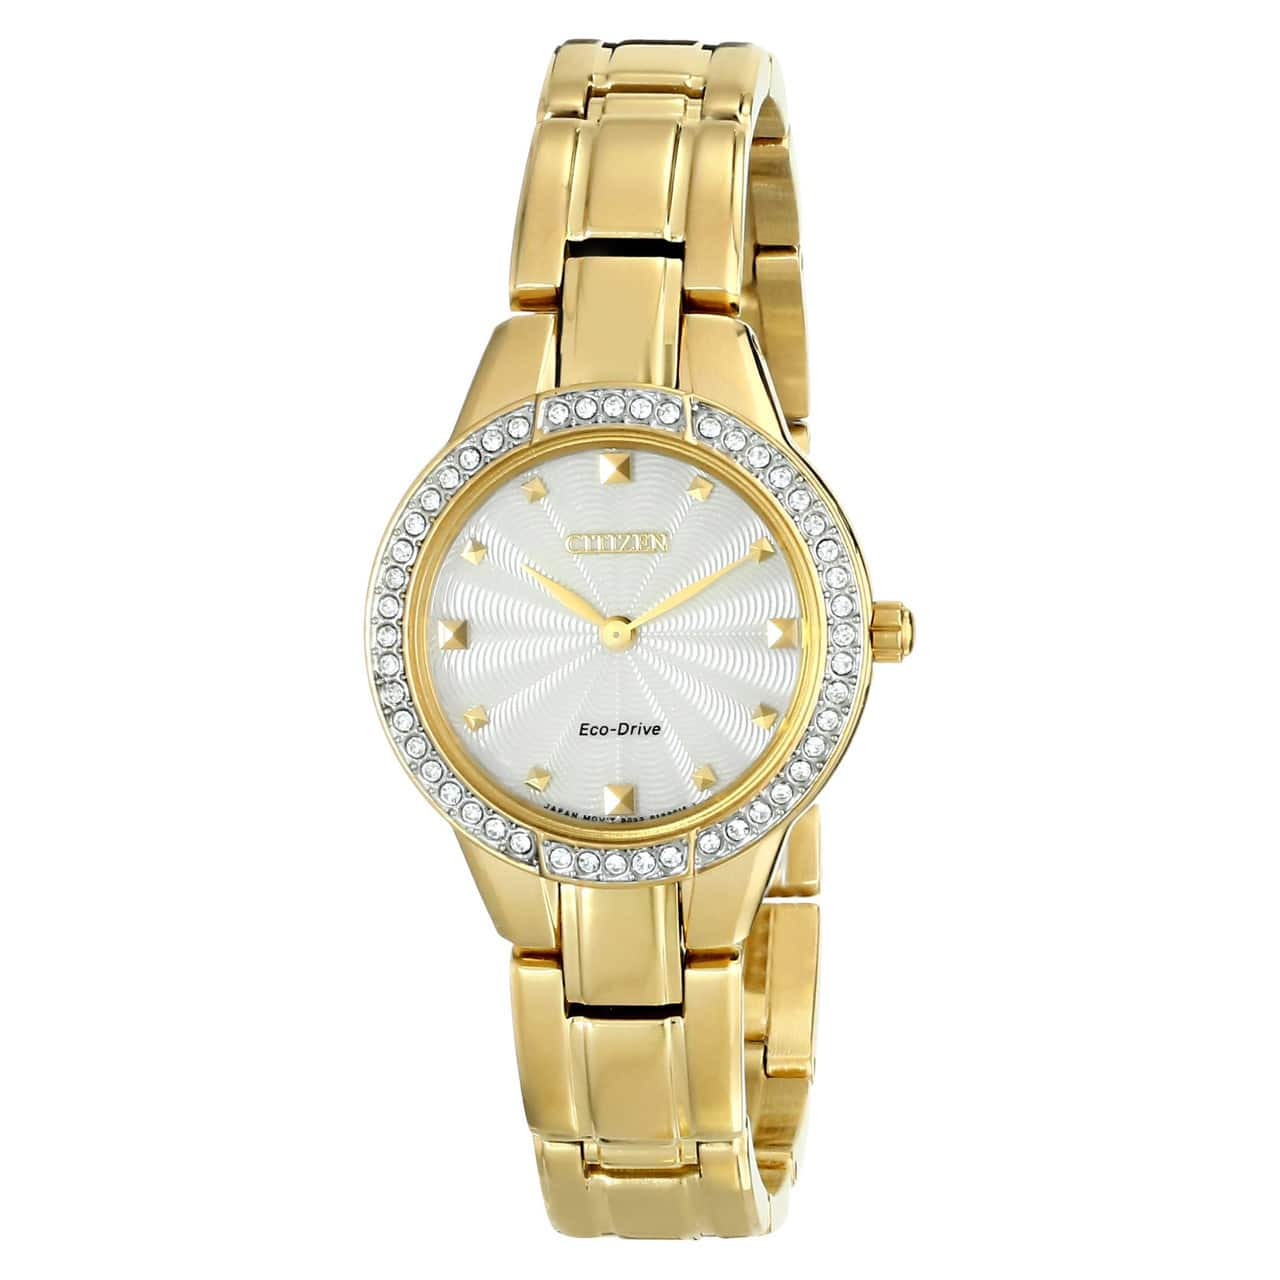 Citizen EX1362-54P Eco Drive Gold Tone Champagne Dial Women's Silhouette Watch $89.30 + Free Shipping